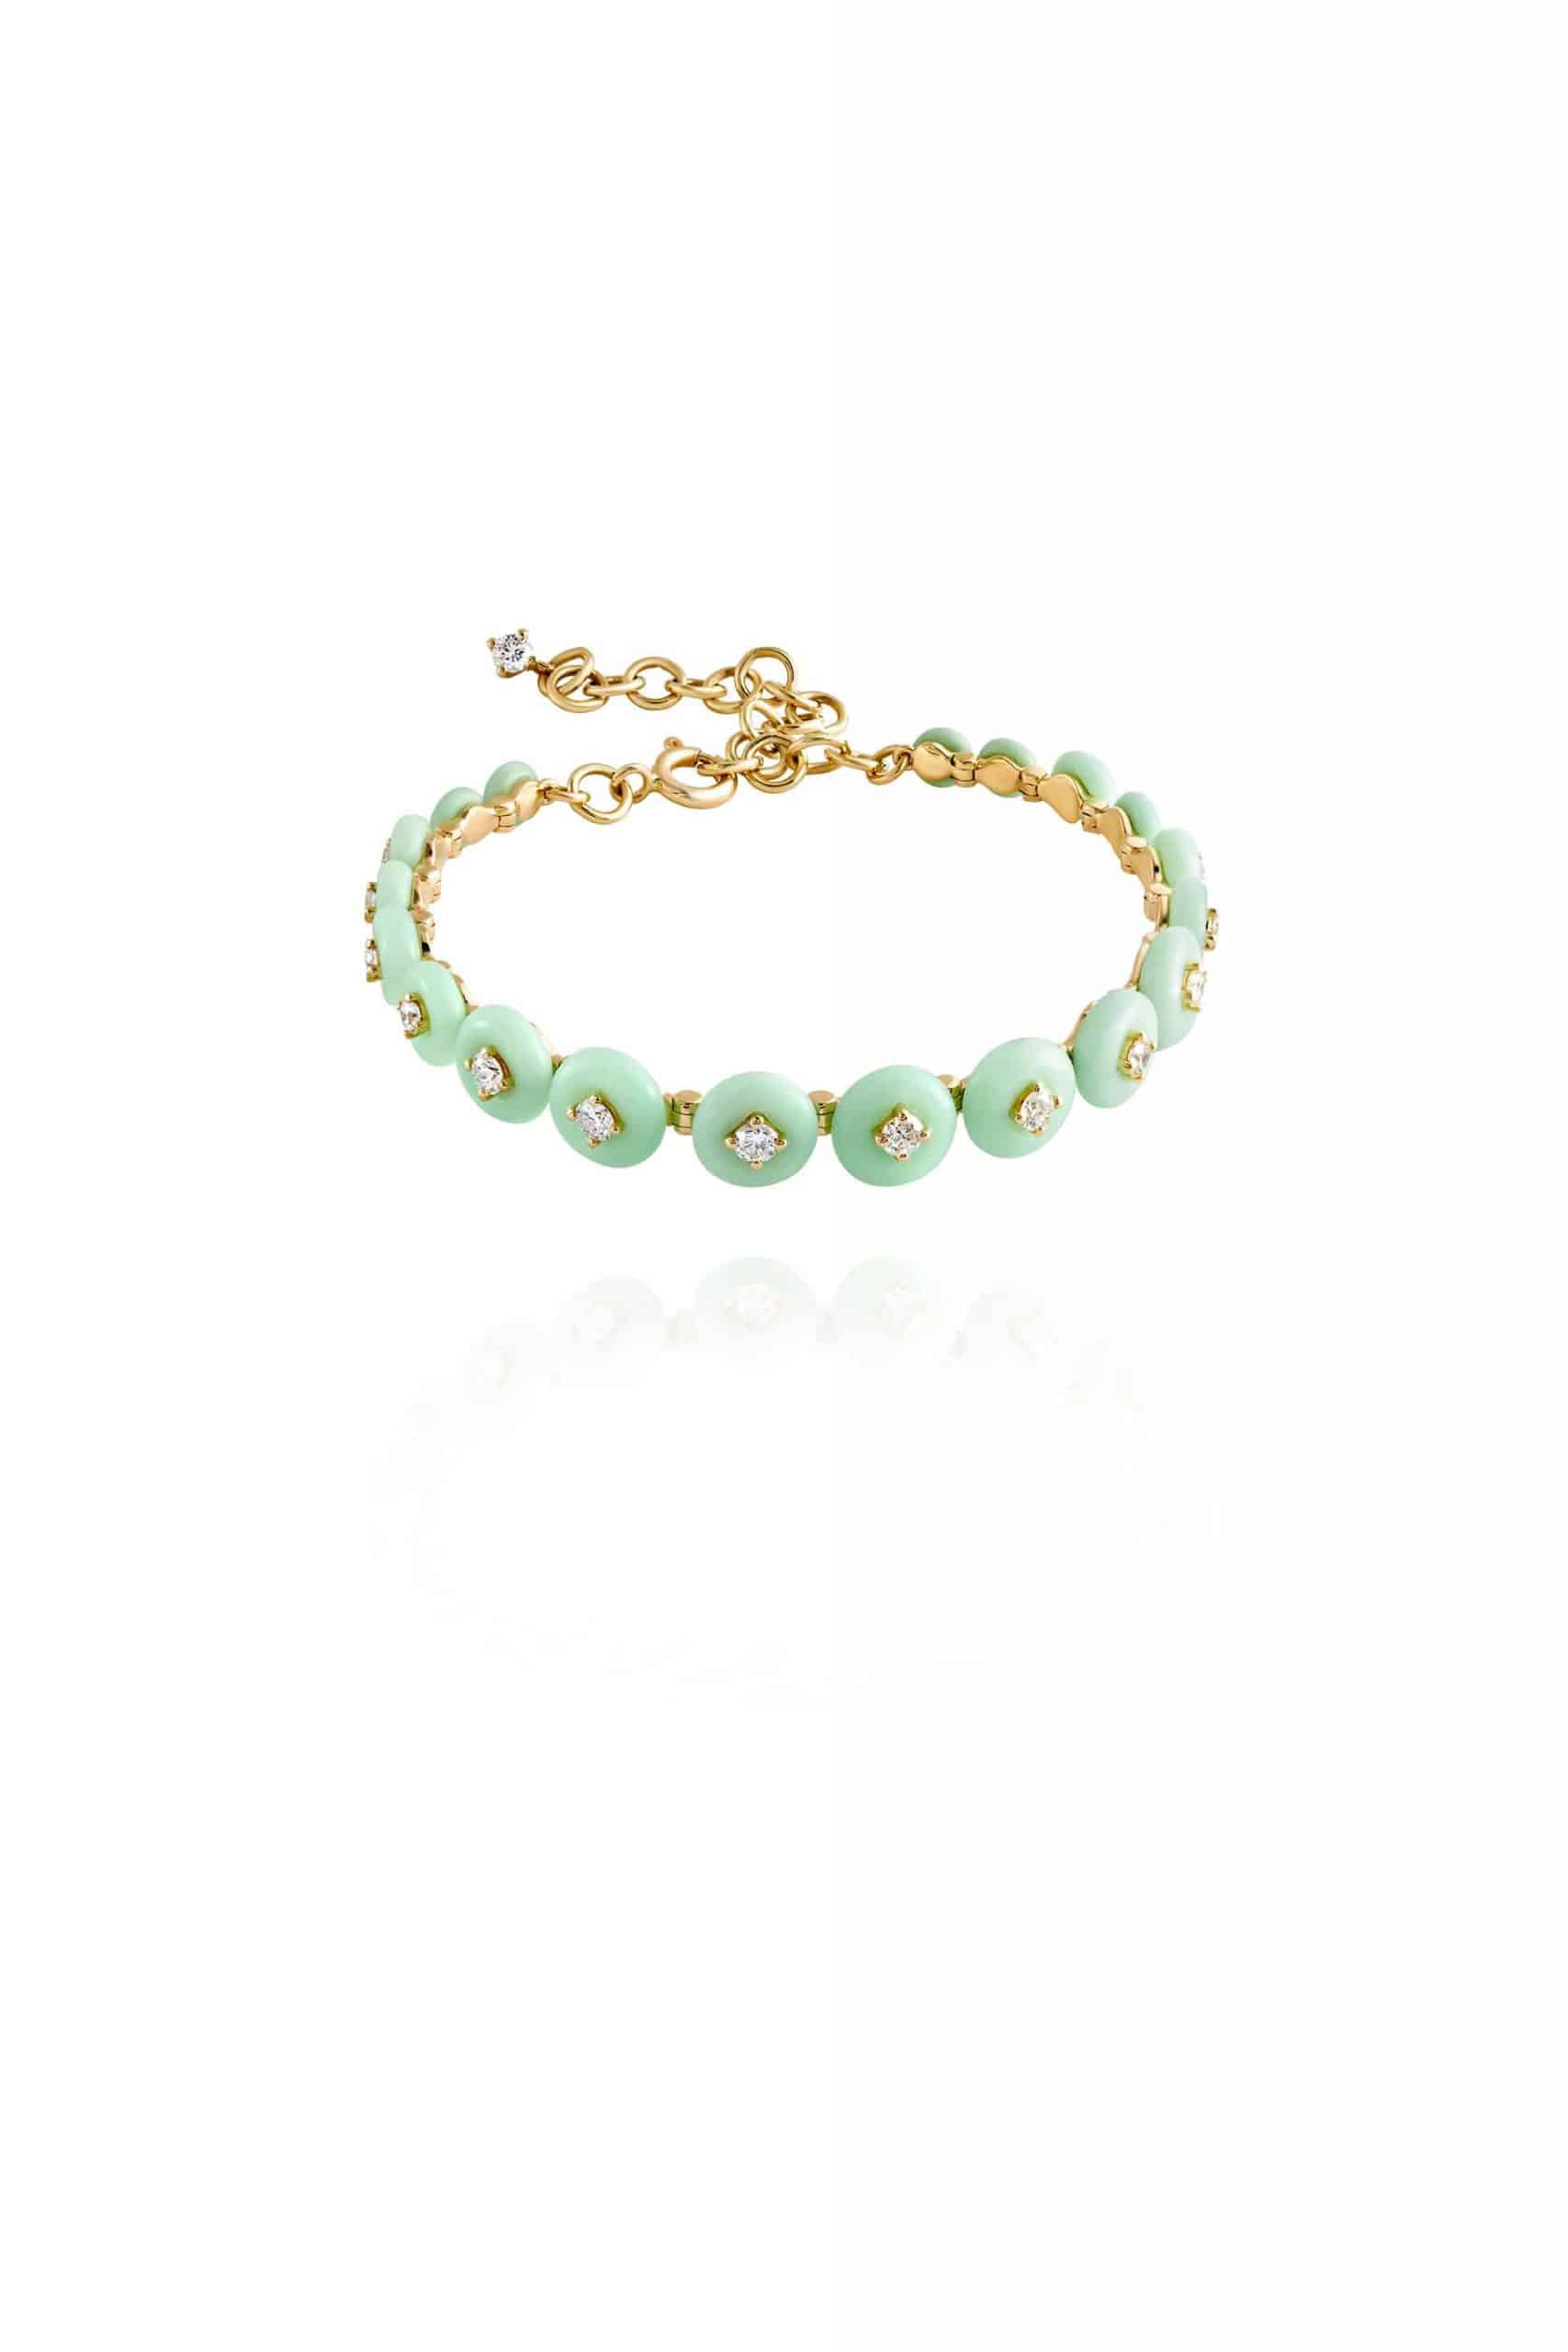 Surrounding Small Bracelet